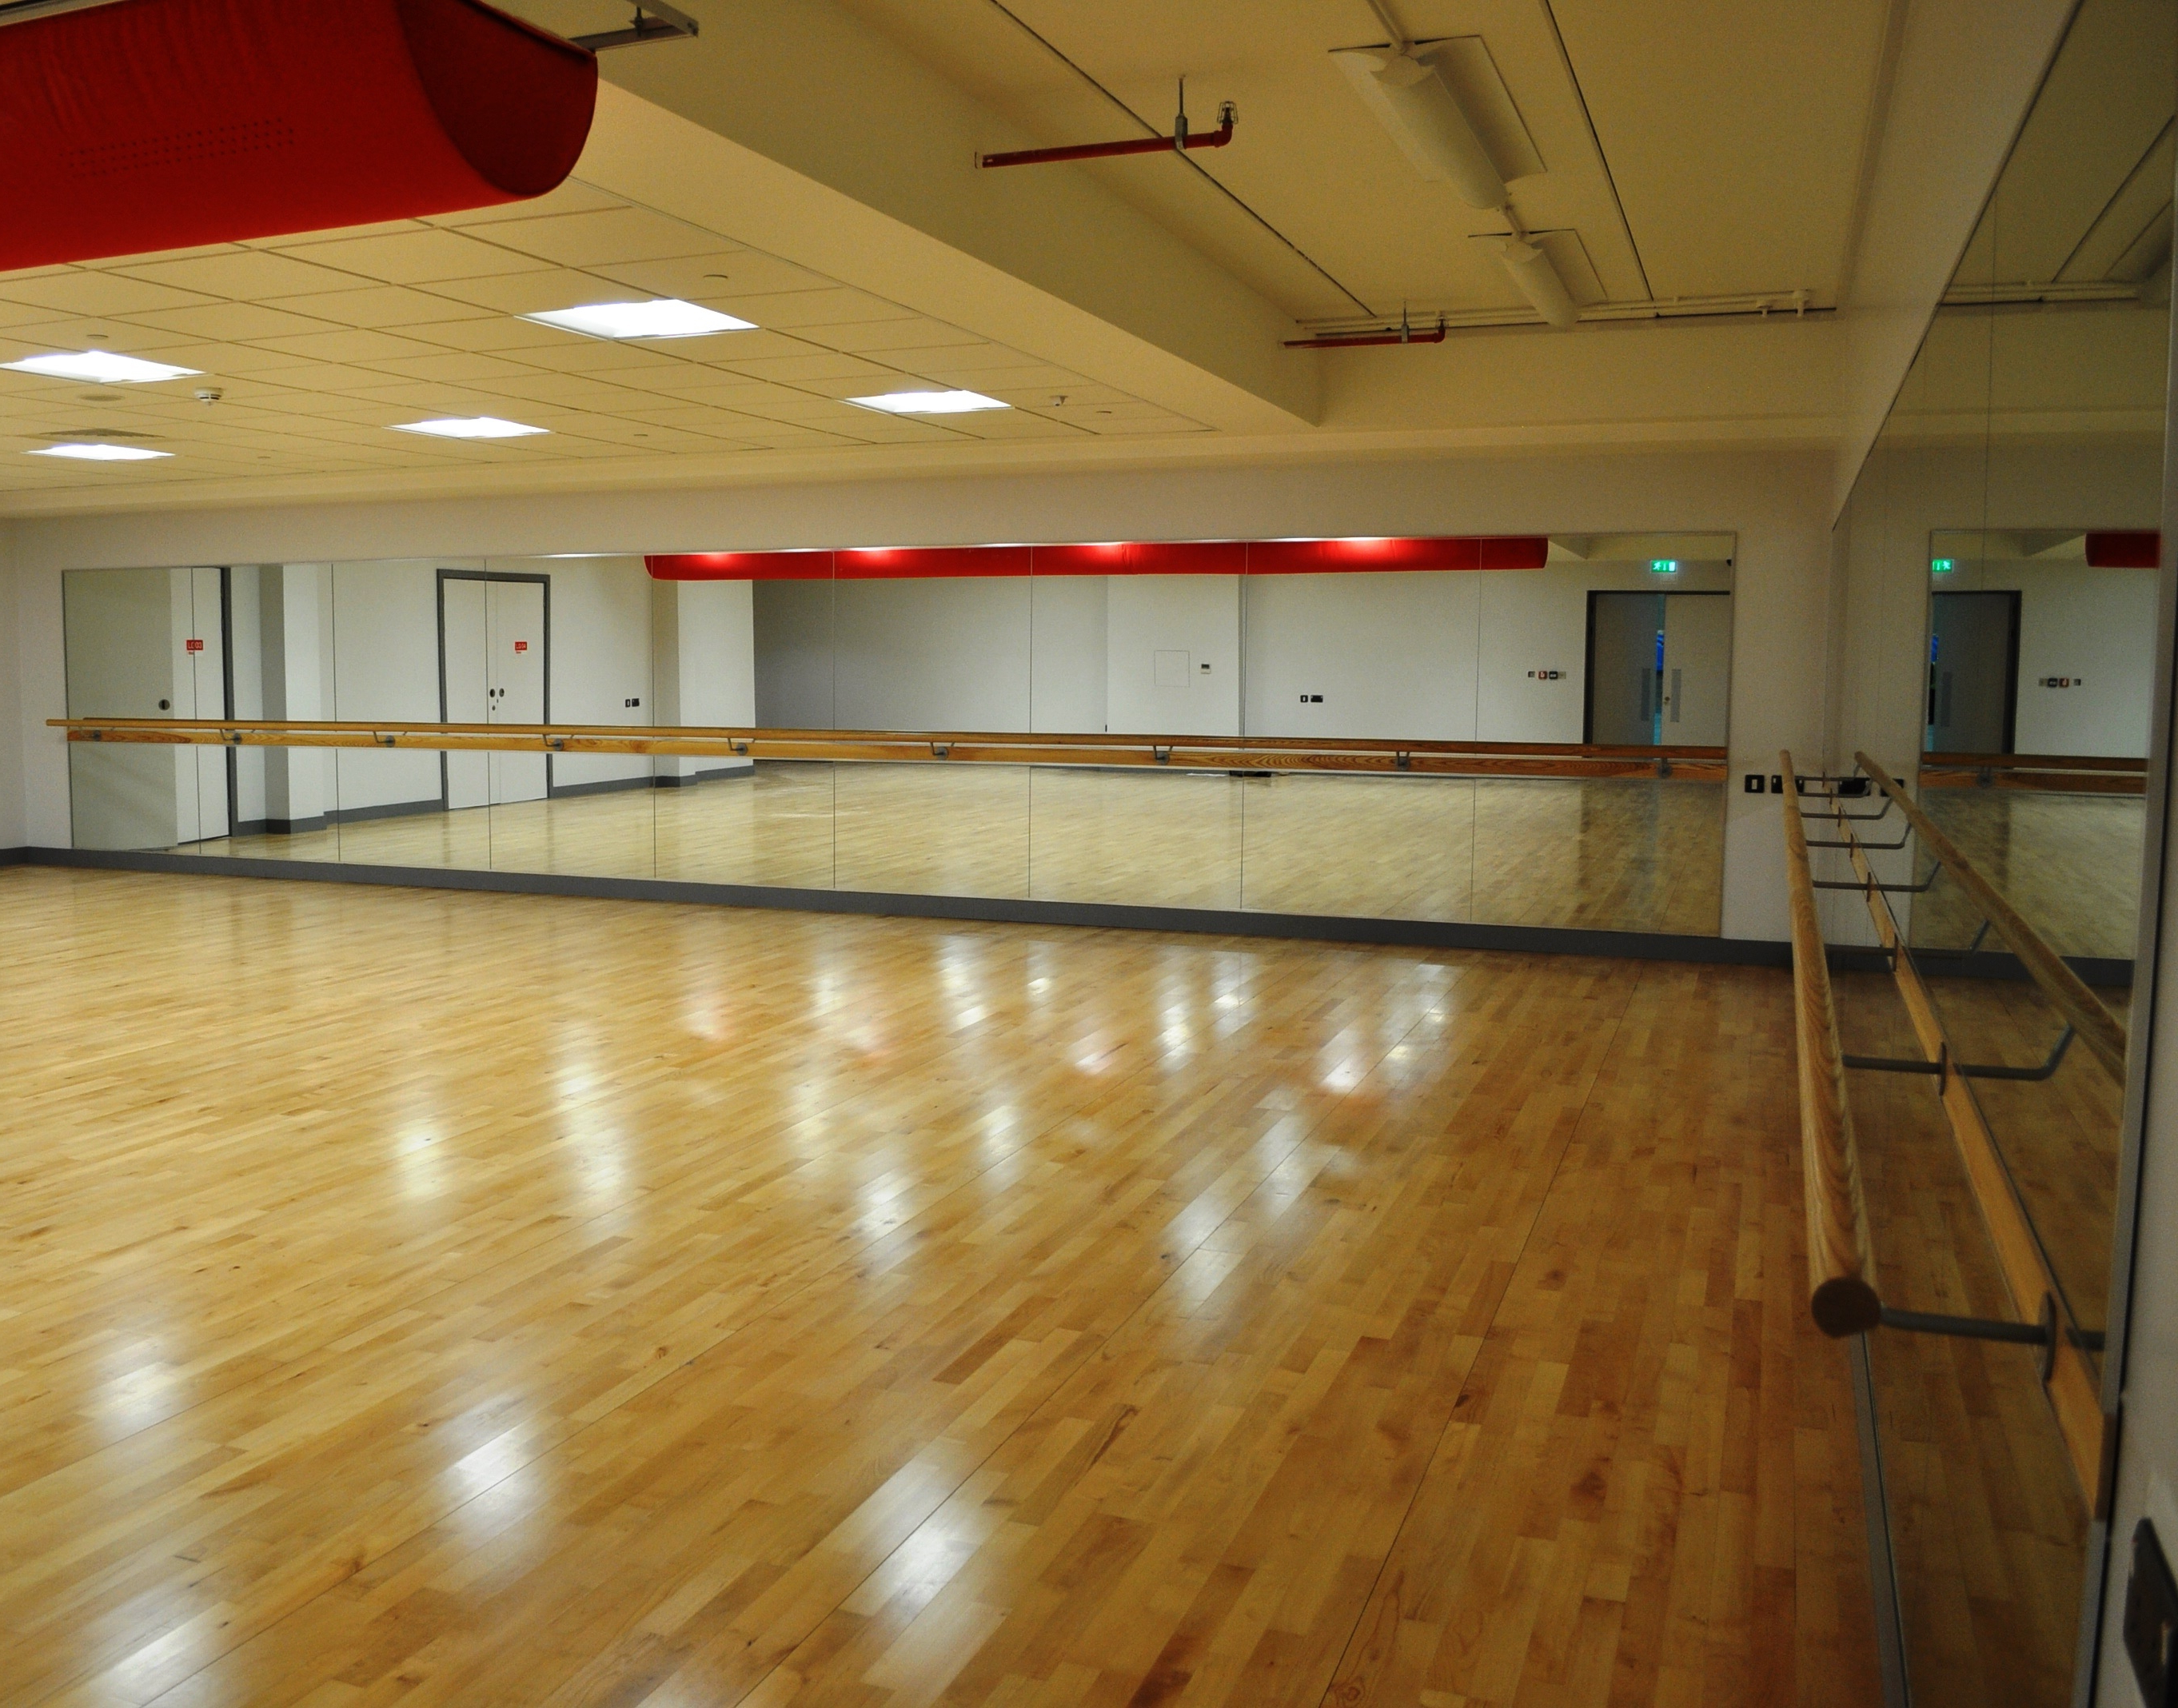 Large Gym Mirrors – Wall Fixed Mirror Solutions – Glass Installations Pertaining To Latest Dance Wall Mirrors (View 5 of 20)